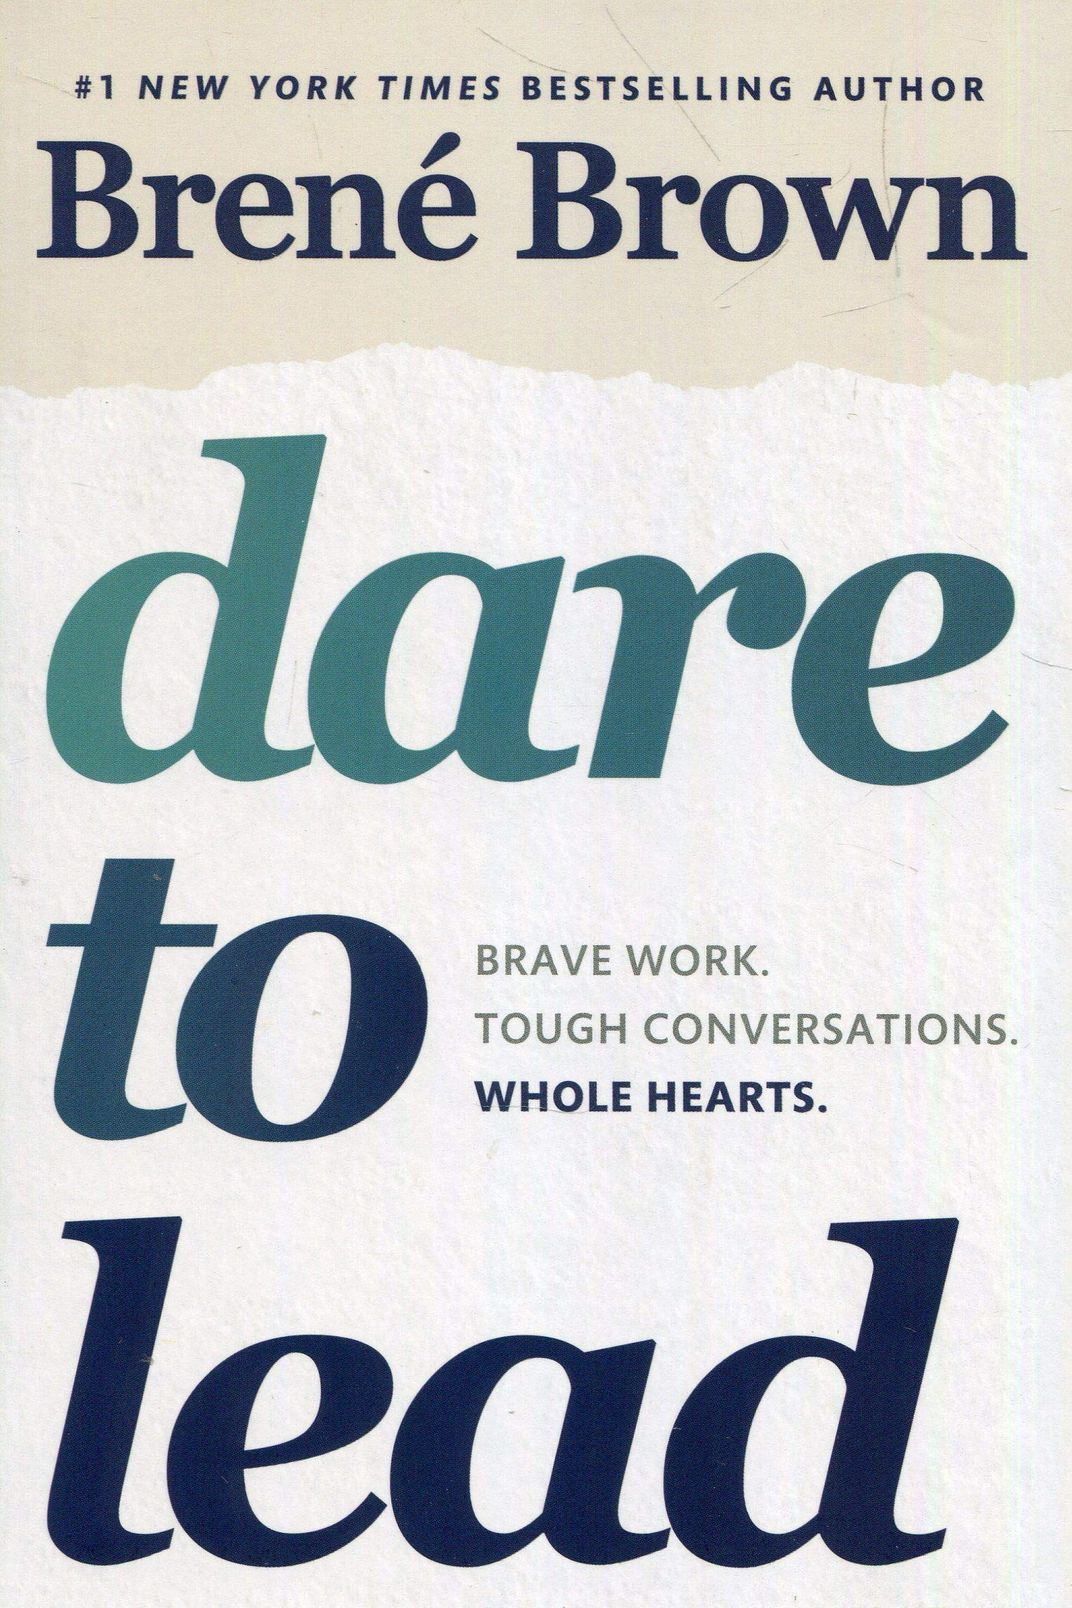 Dare to Lead: Brave Work. Tough Conversations. Whole Hearts, by Brené Brown